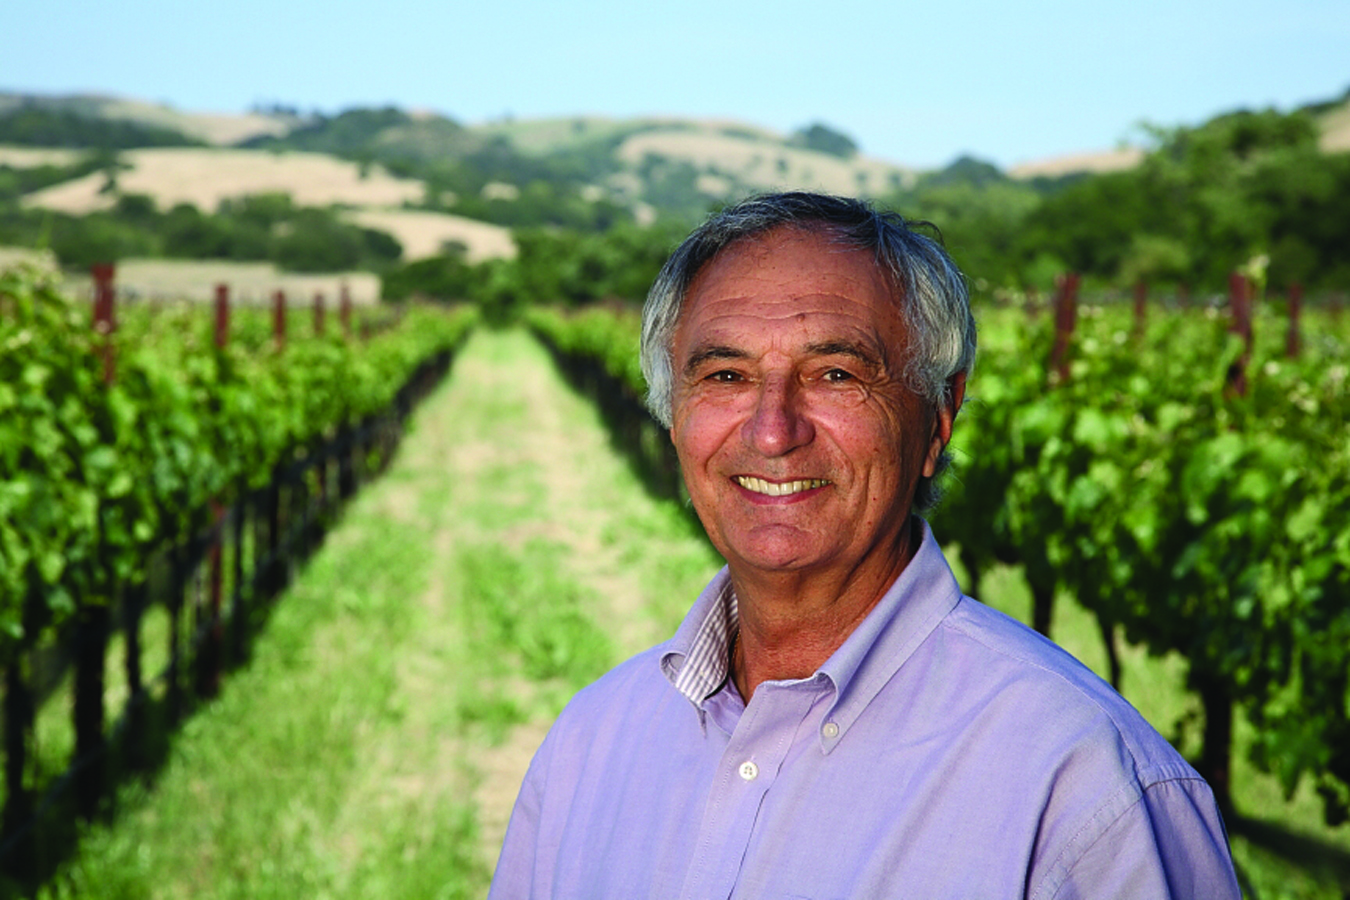 Winemaker Bernard Portet is celebrating 40 Years in the Napa Valley in 2012.